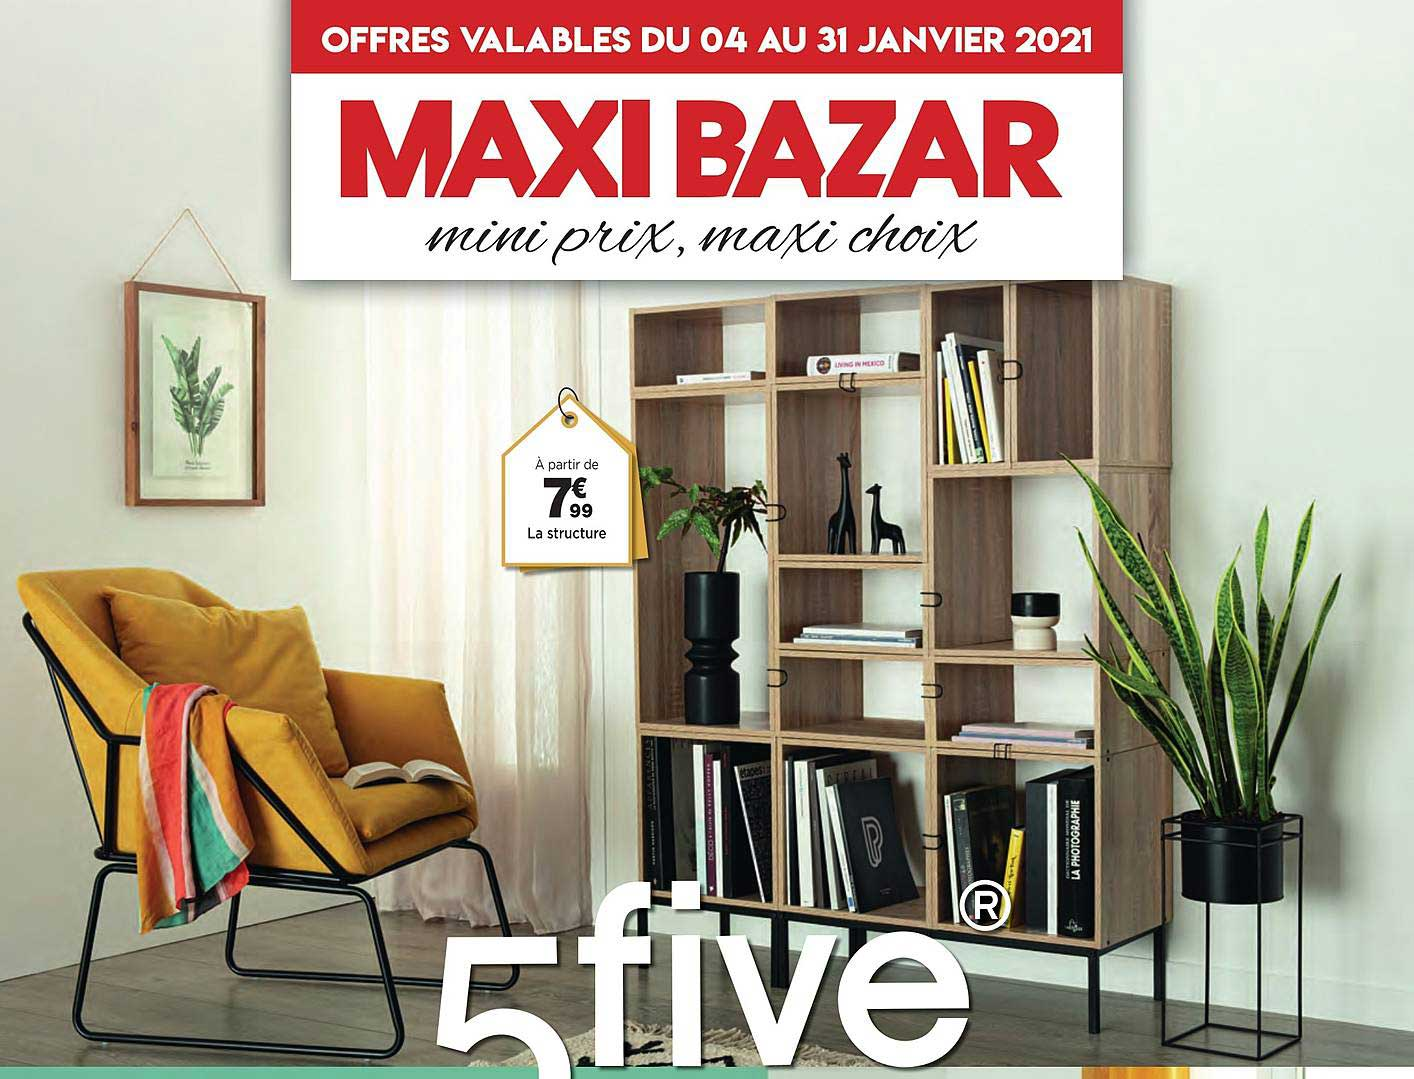 Maxi Bazar La Structures 5five